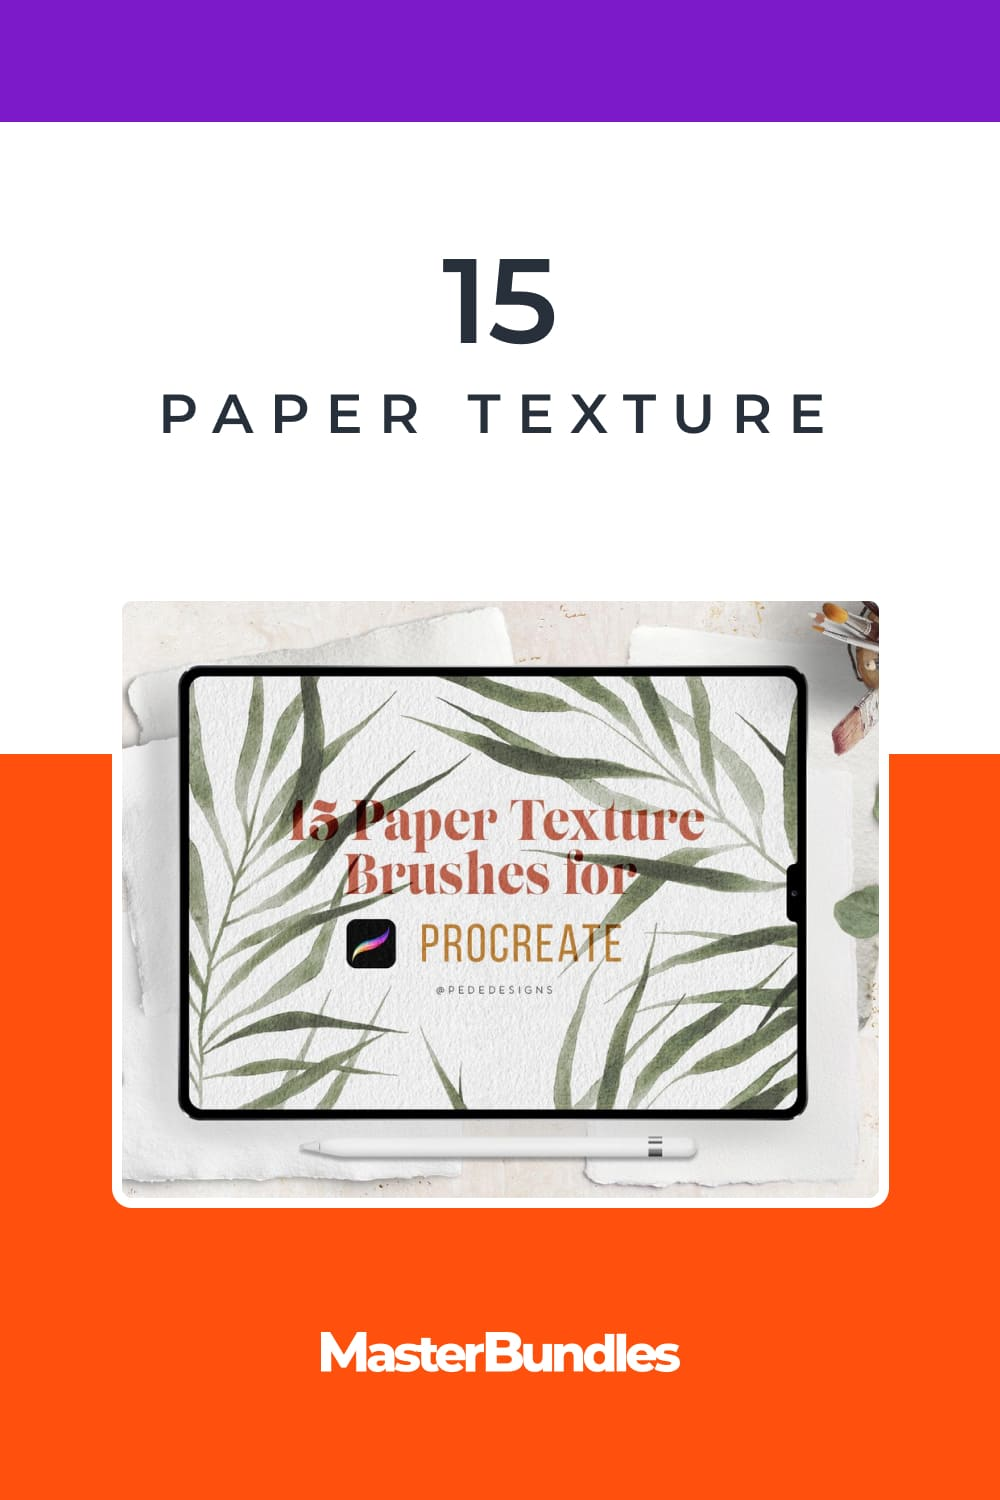 15 Paper Texture Brushes for Procreate, add realism into your digital art.